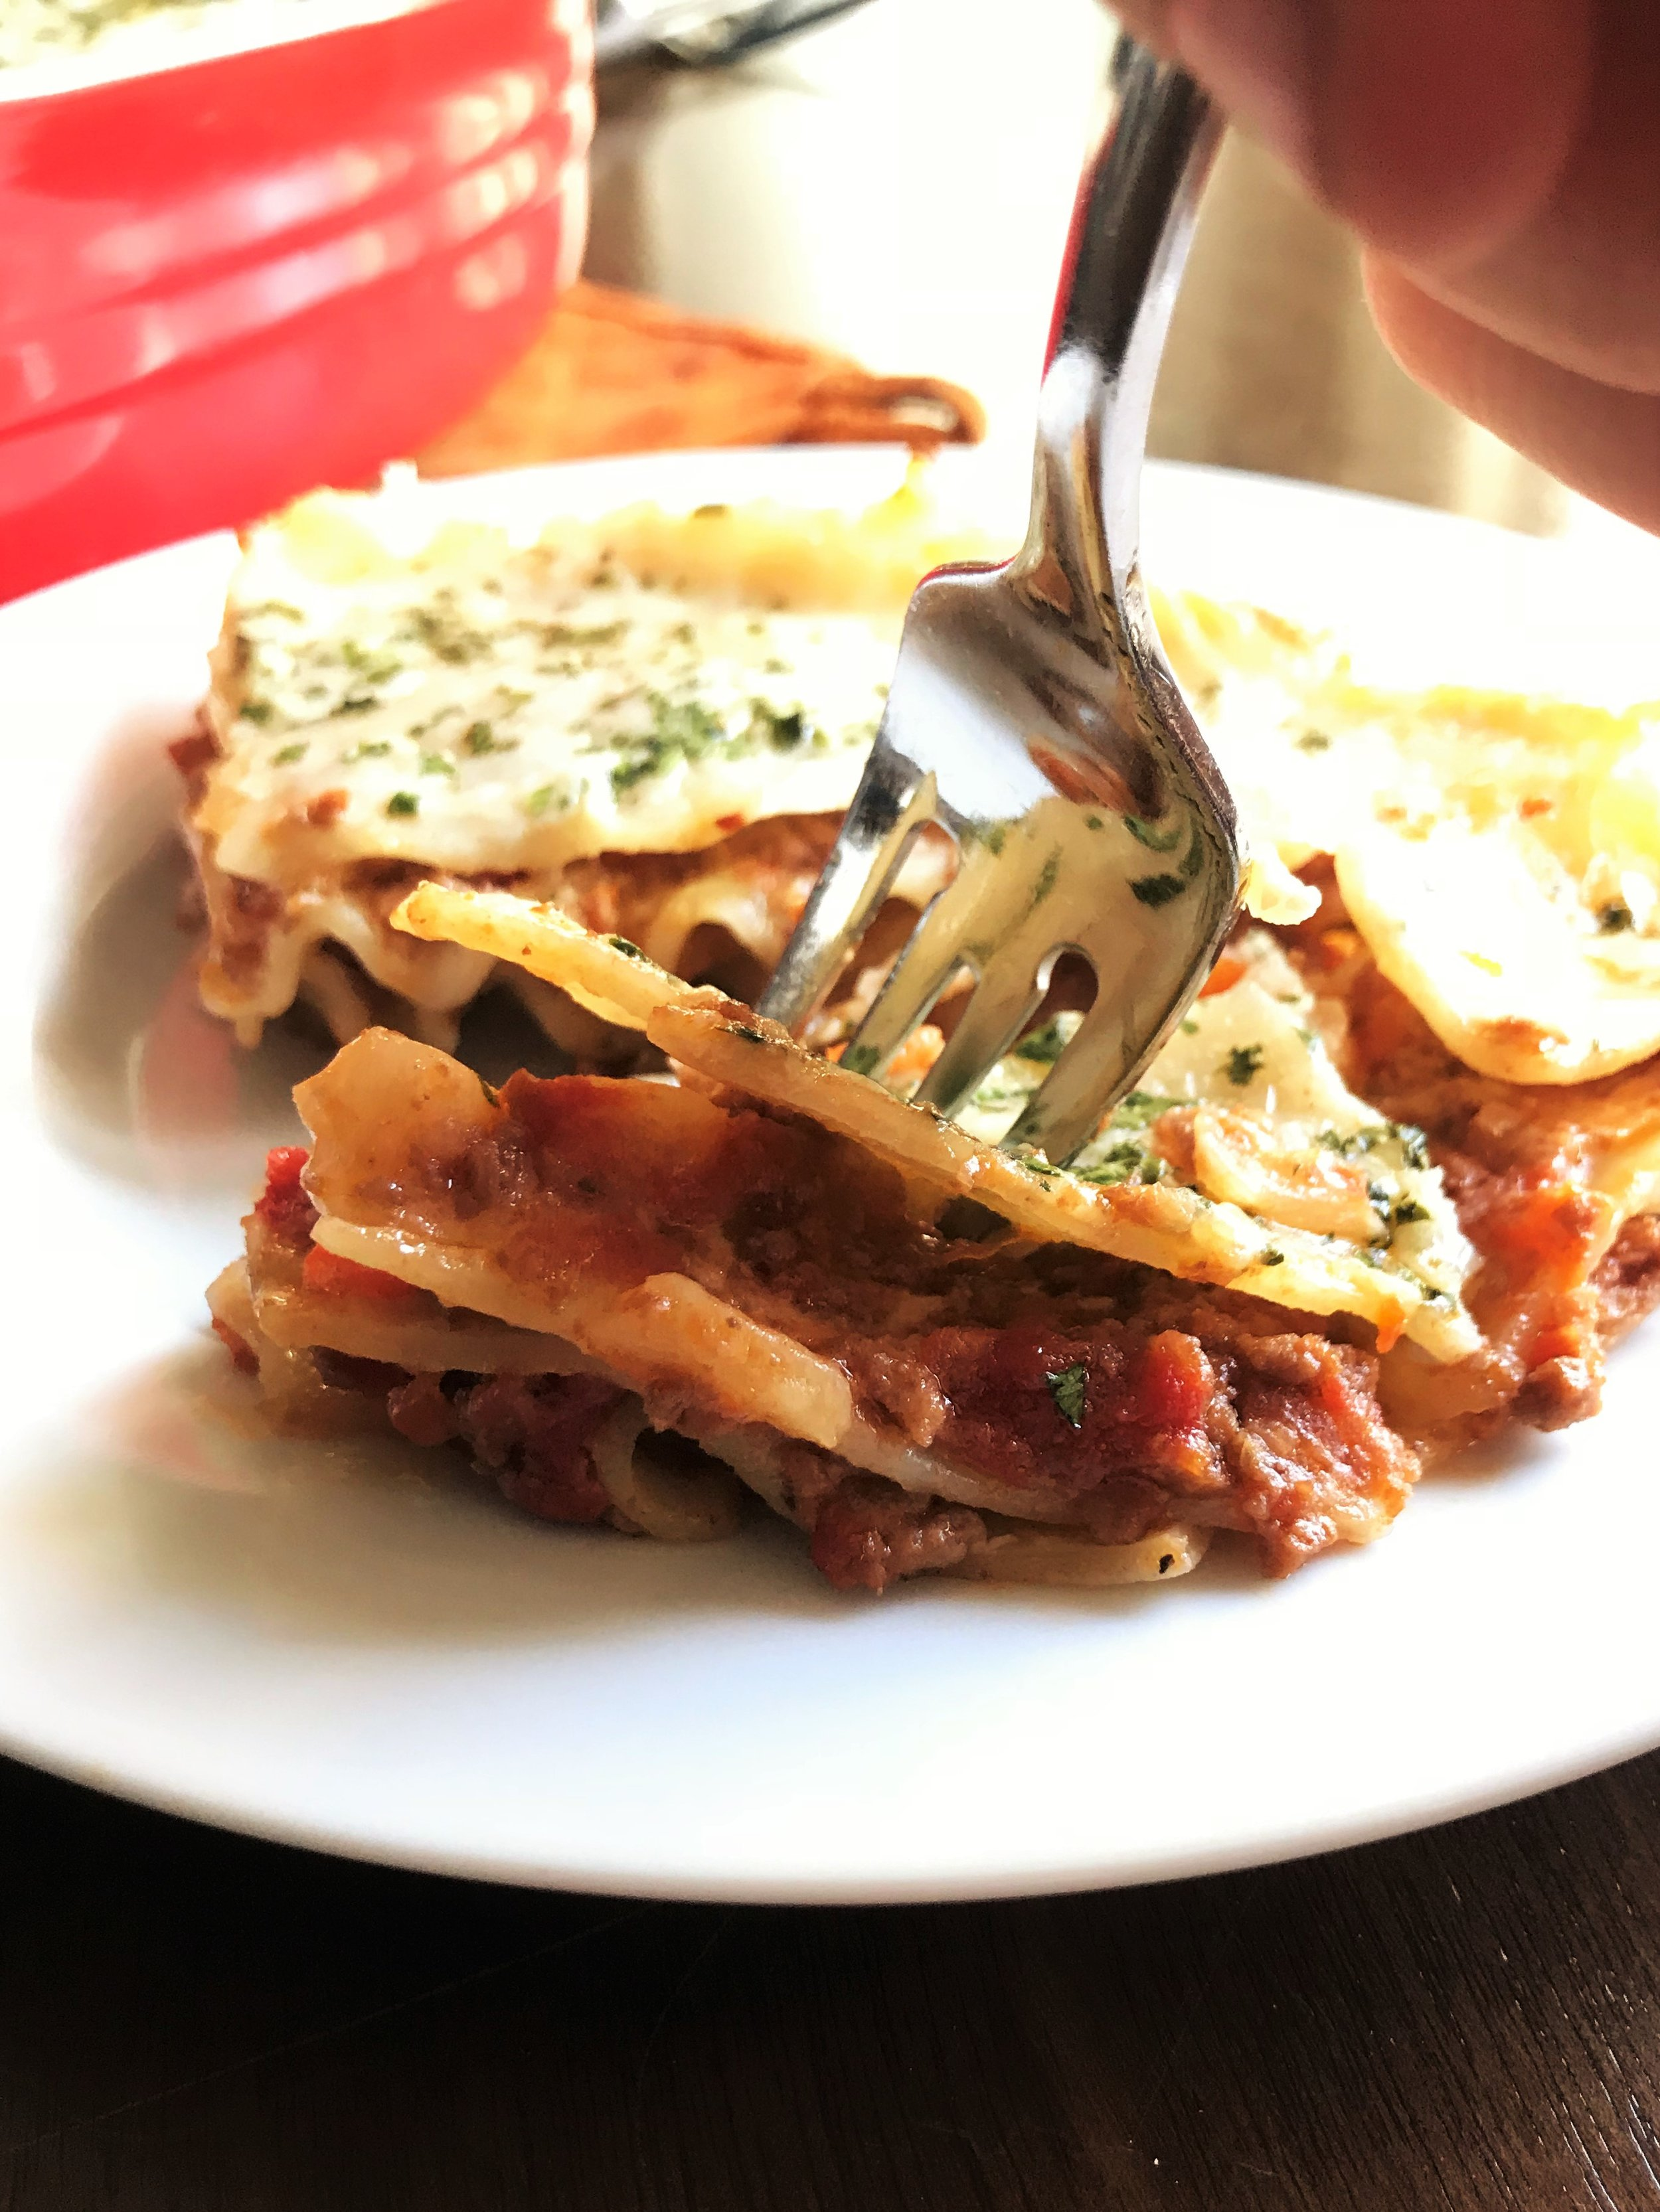 Digging in to that Classic Lasagna. The layers, the pasta, the Parmesan, the creamy goodness, the meaty deliciousness.... My oh my.